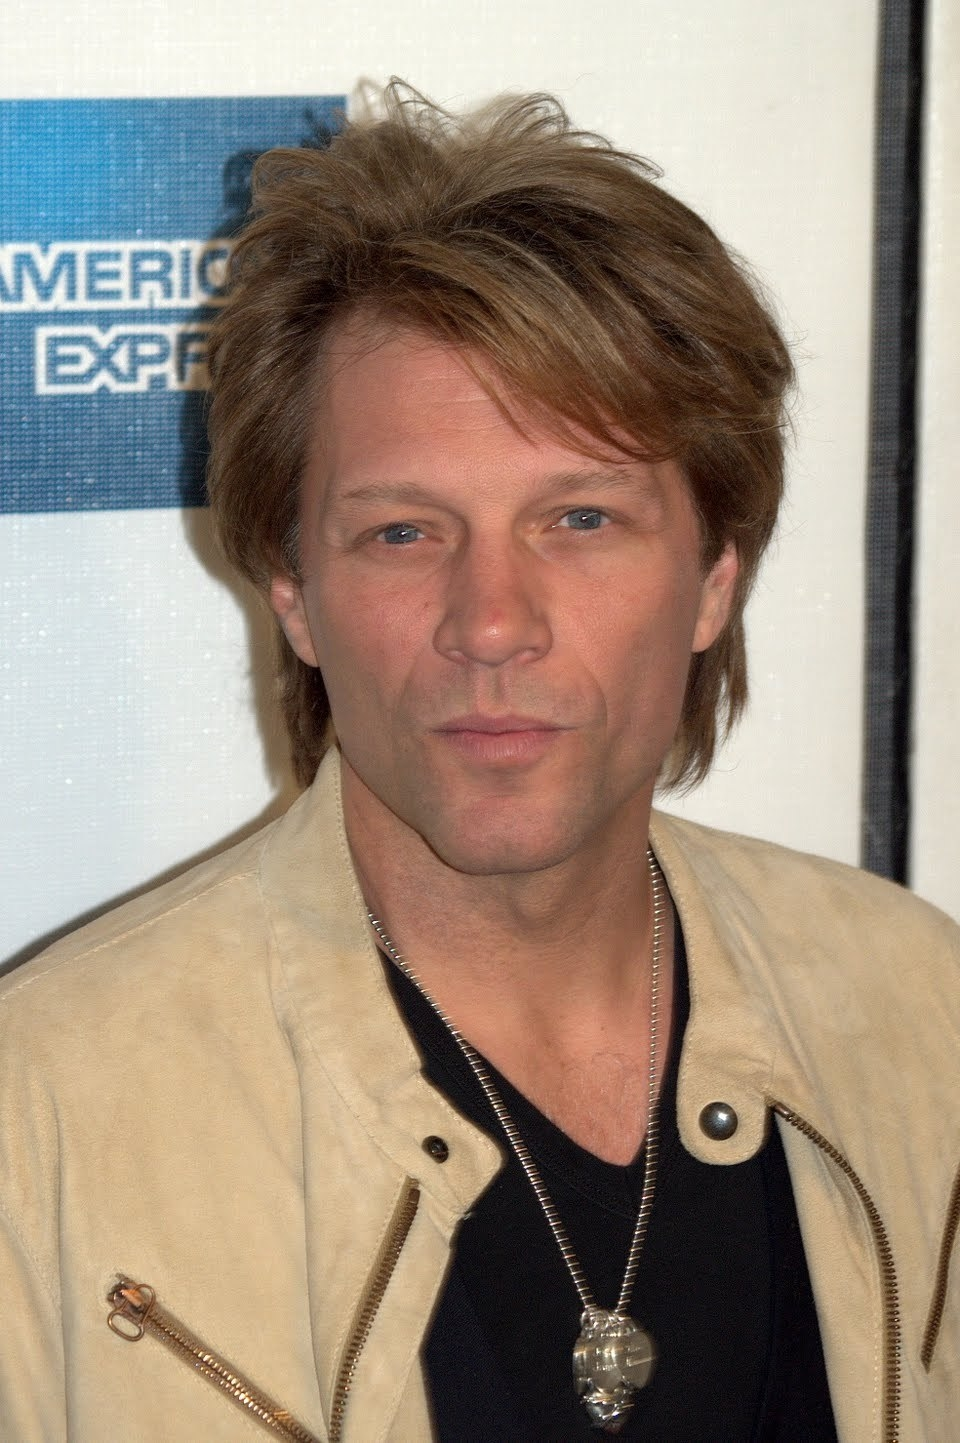 Jon Bon Jovi Net Worth